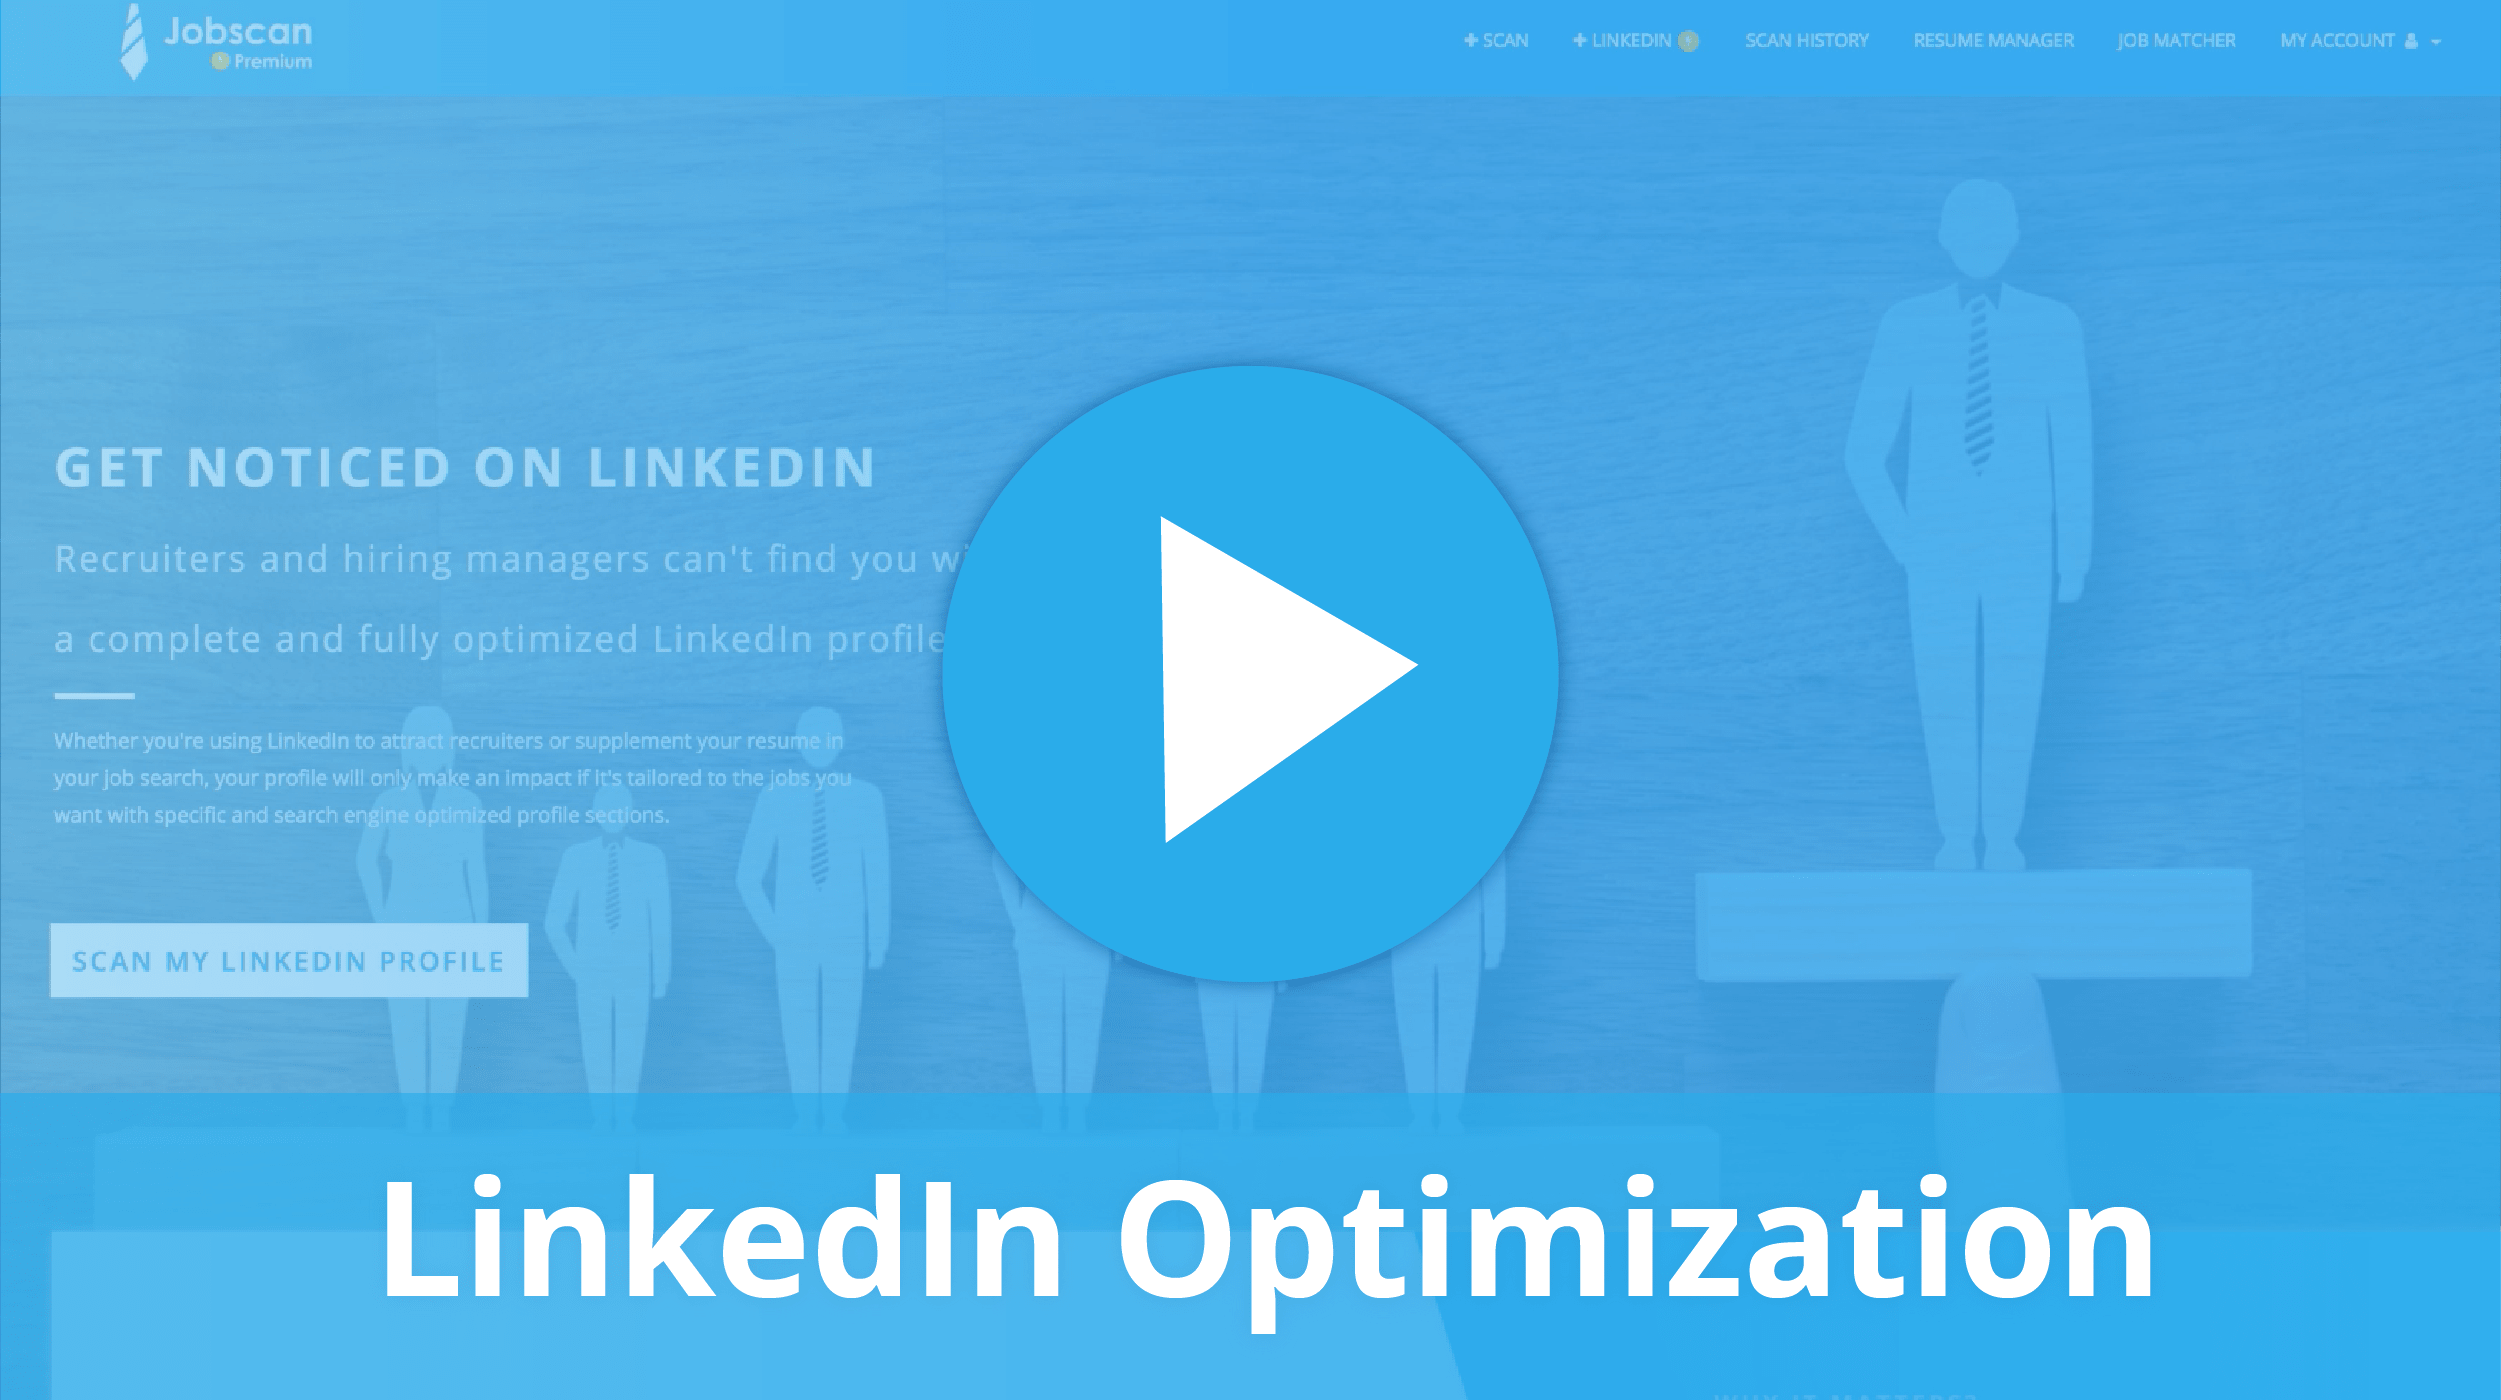 Jobscan LinkedIn Optimization Video